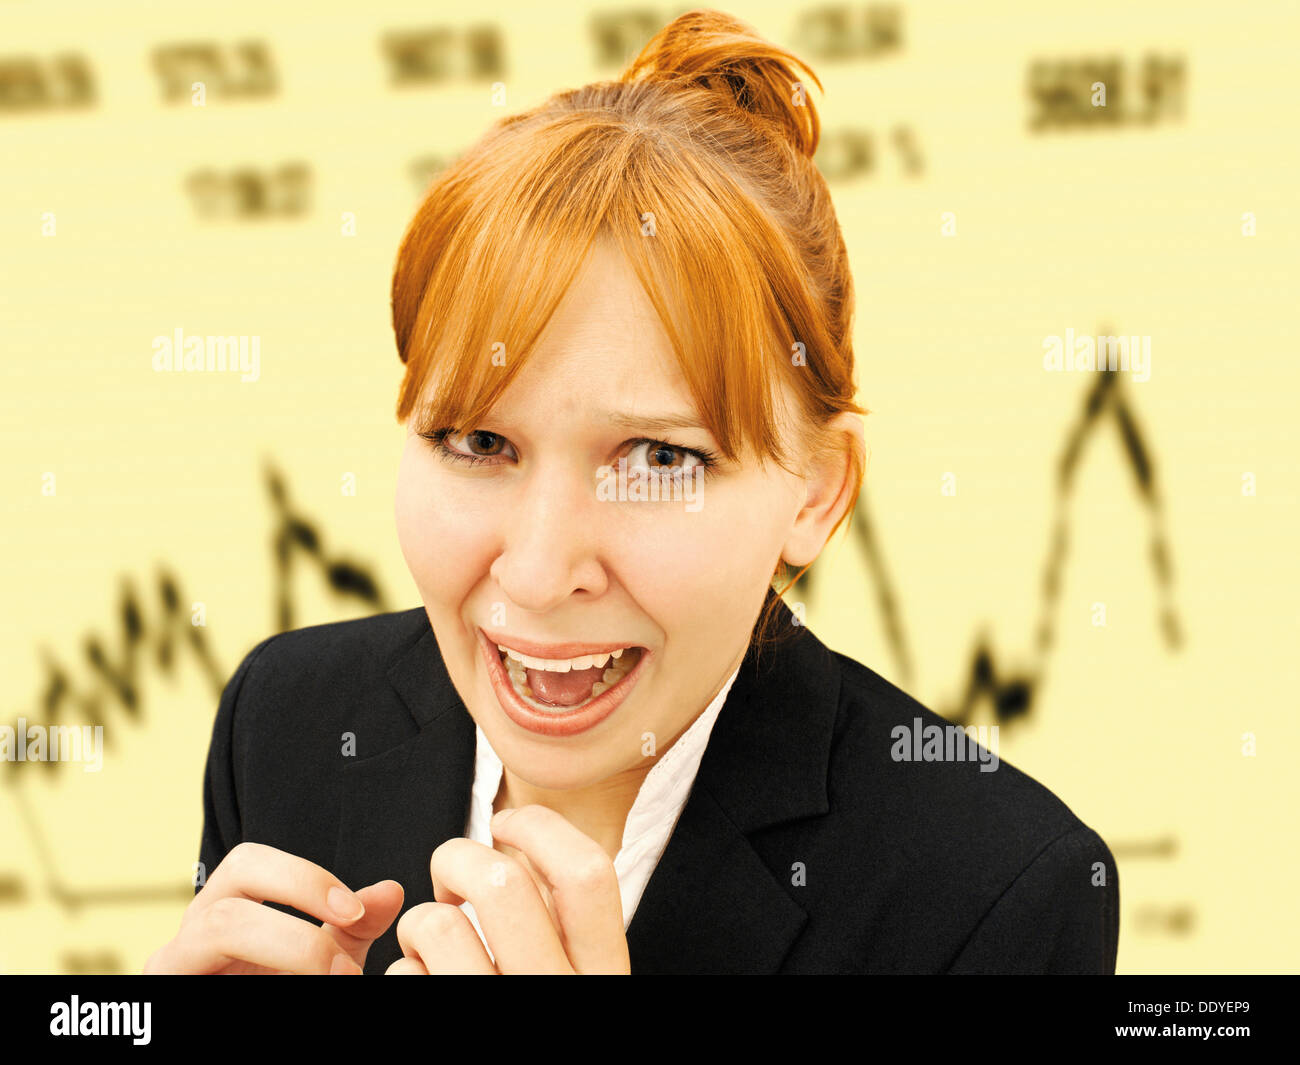 Portrait of an excited, hysterical businesswoman standing in front of a stock market index - Stock Image